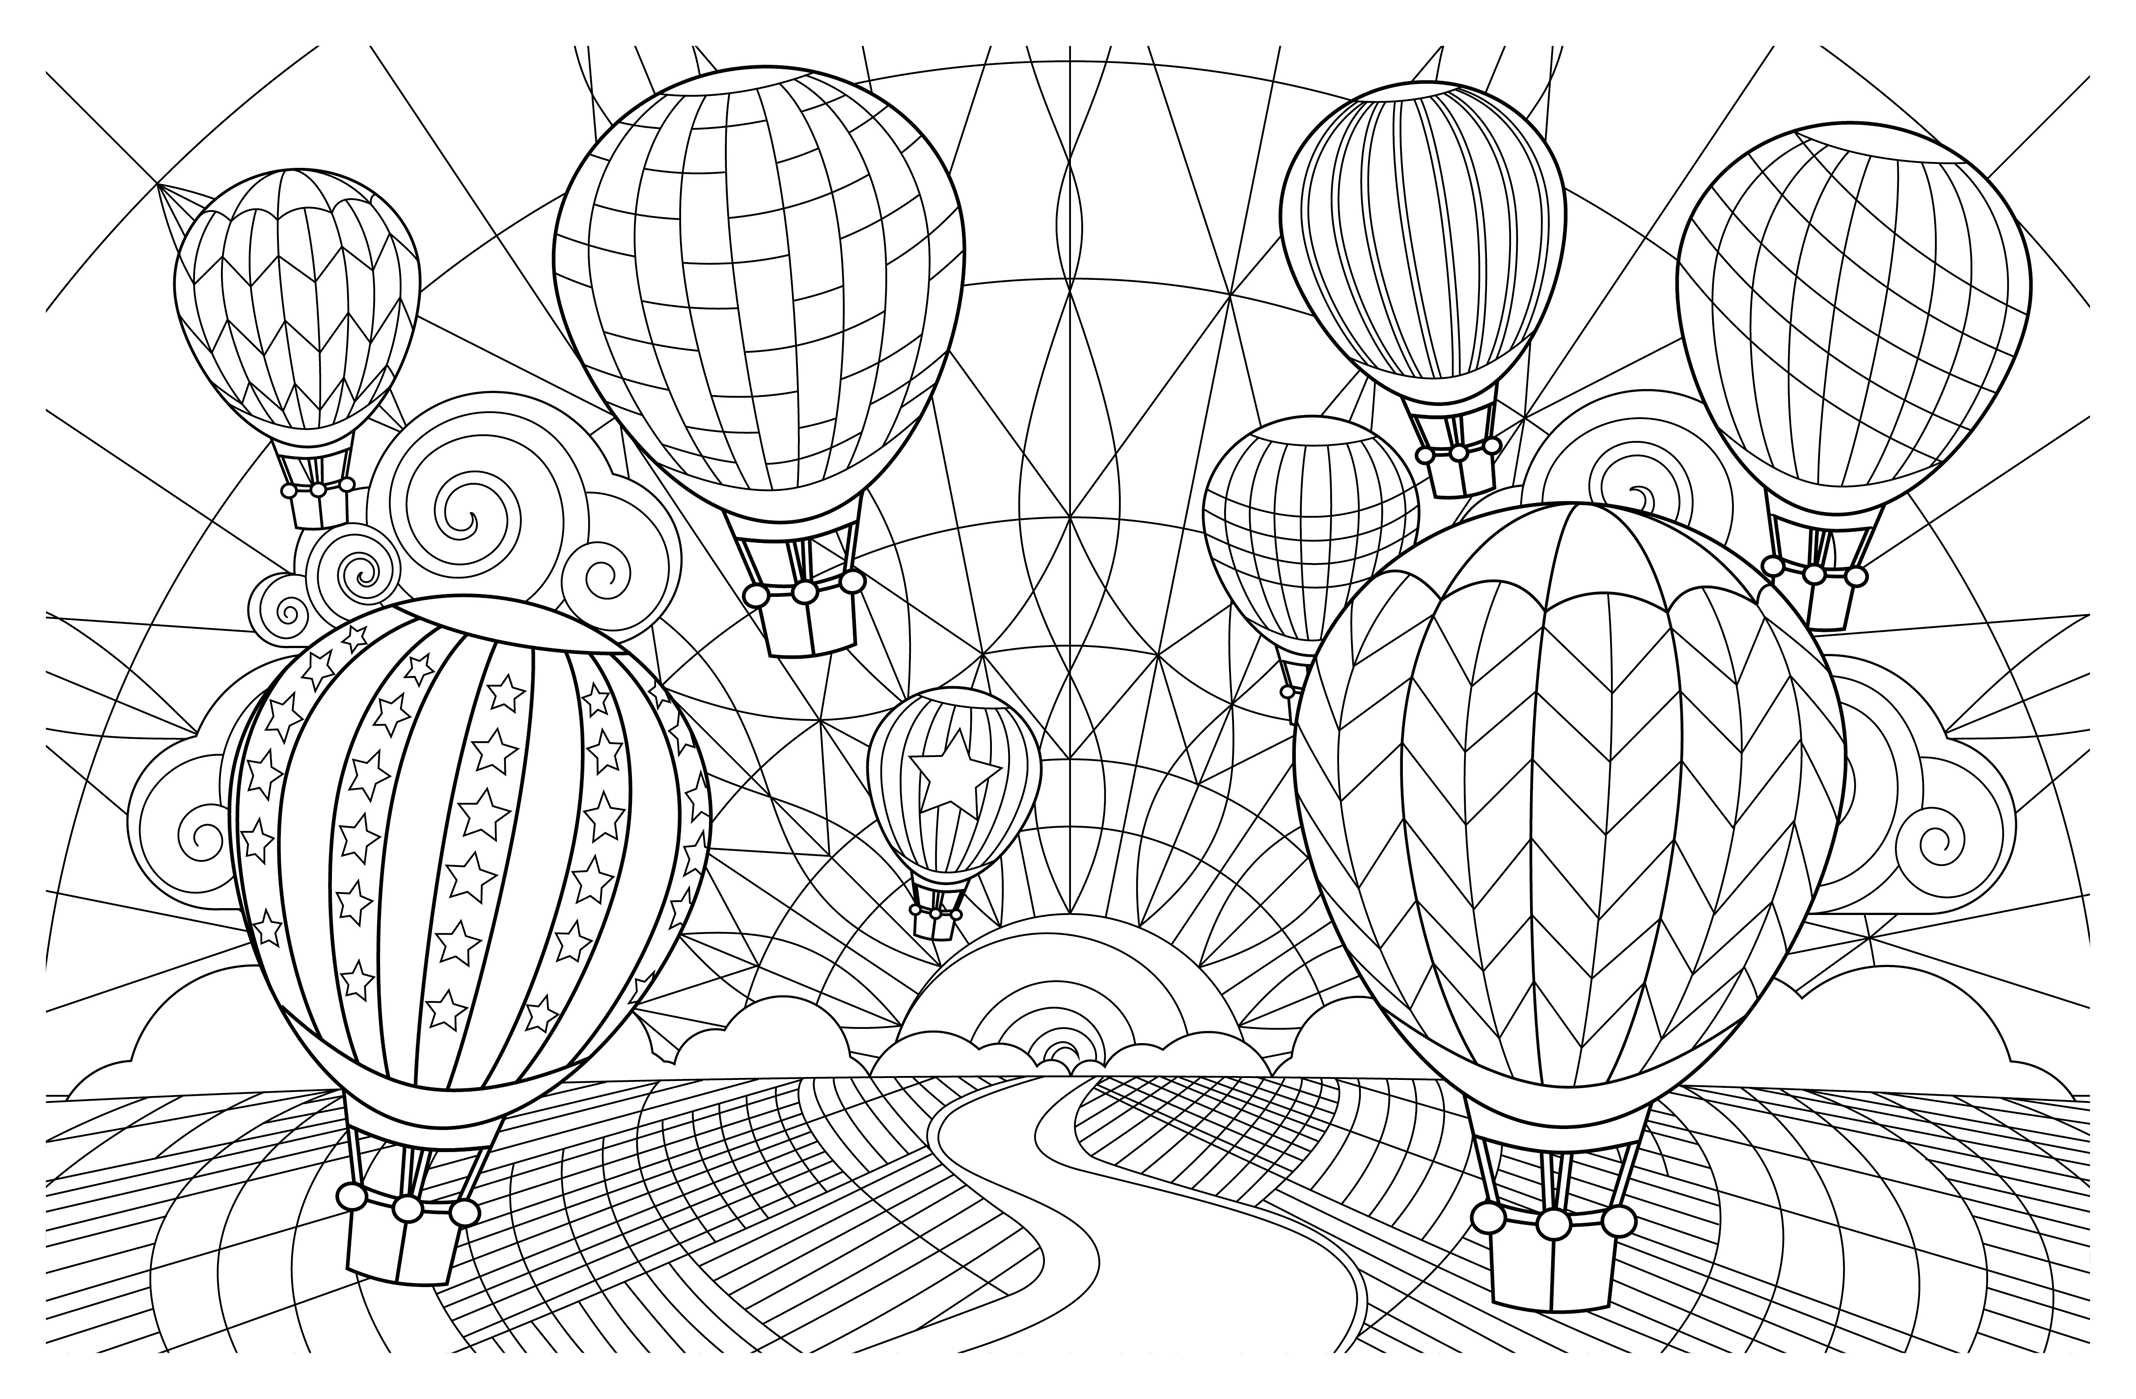 Hot Air Balloon Coloring Sheets New Balloon Coloring Pages as Collection Of Hot Air Balloon Coloring Page Collection